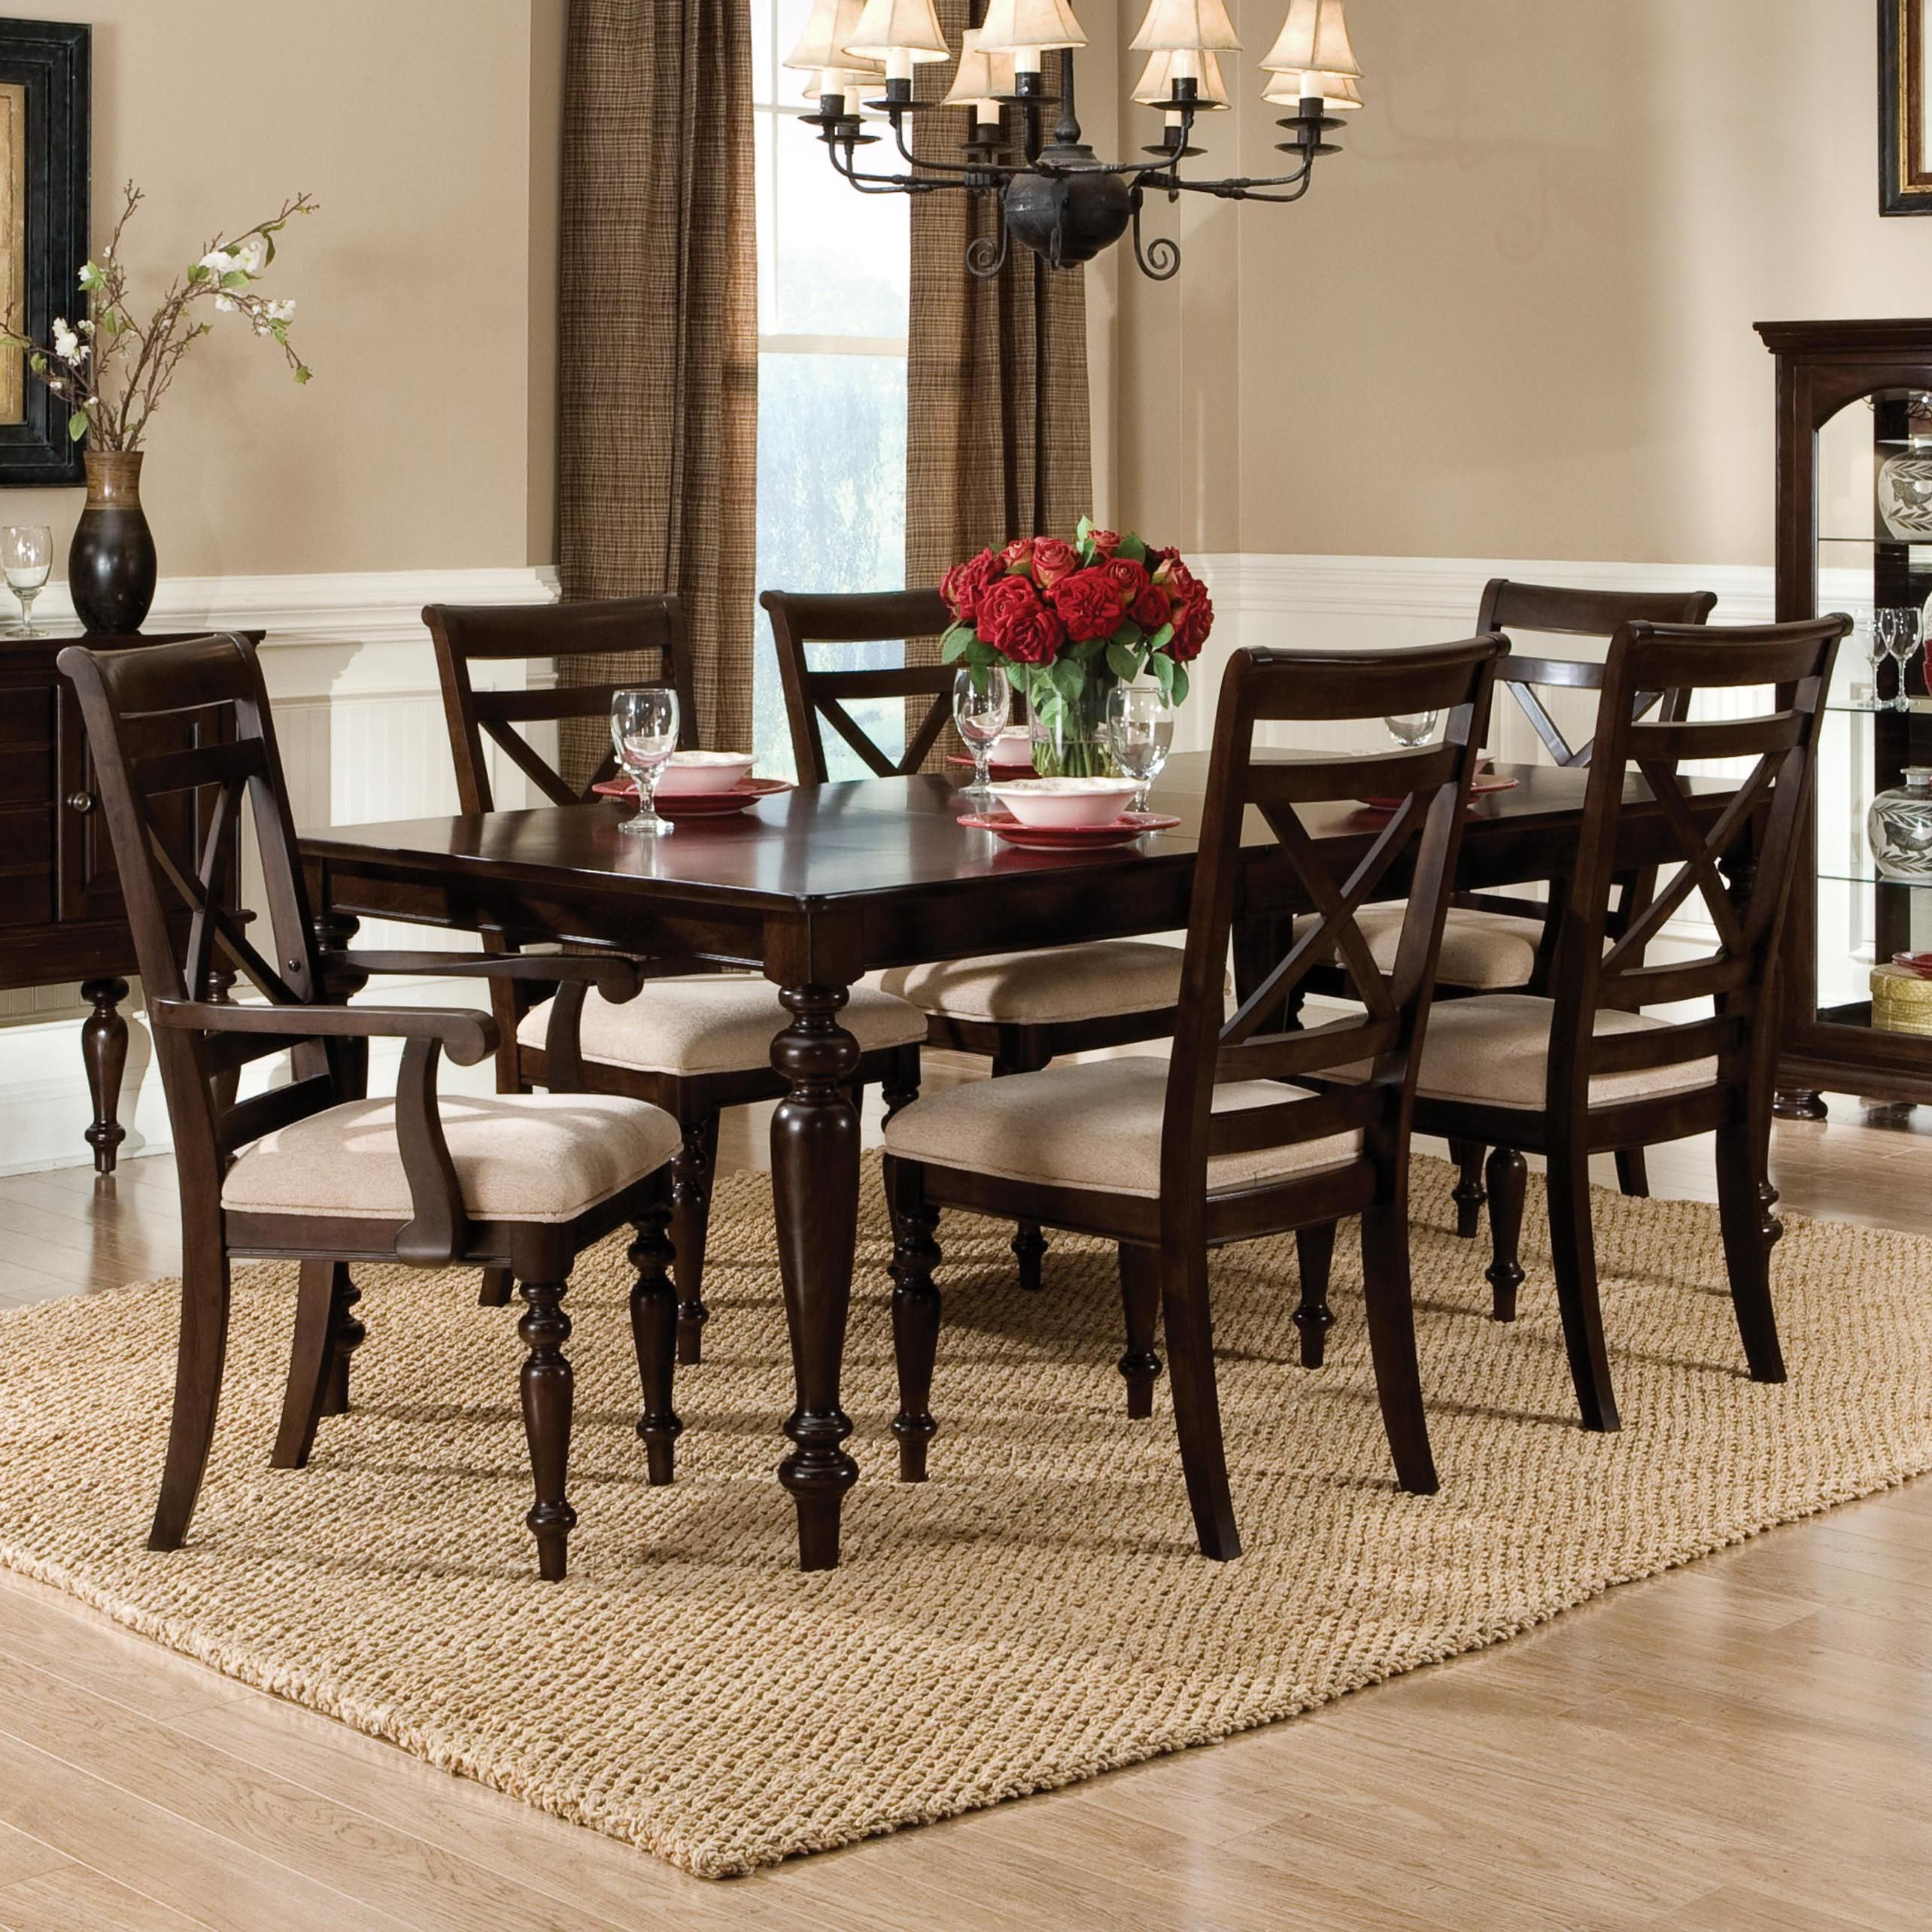 Java 7 Piece Table and Chair Set by Standard Furniture